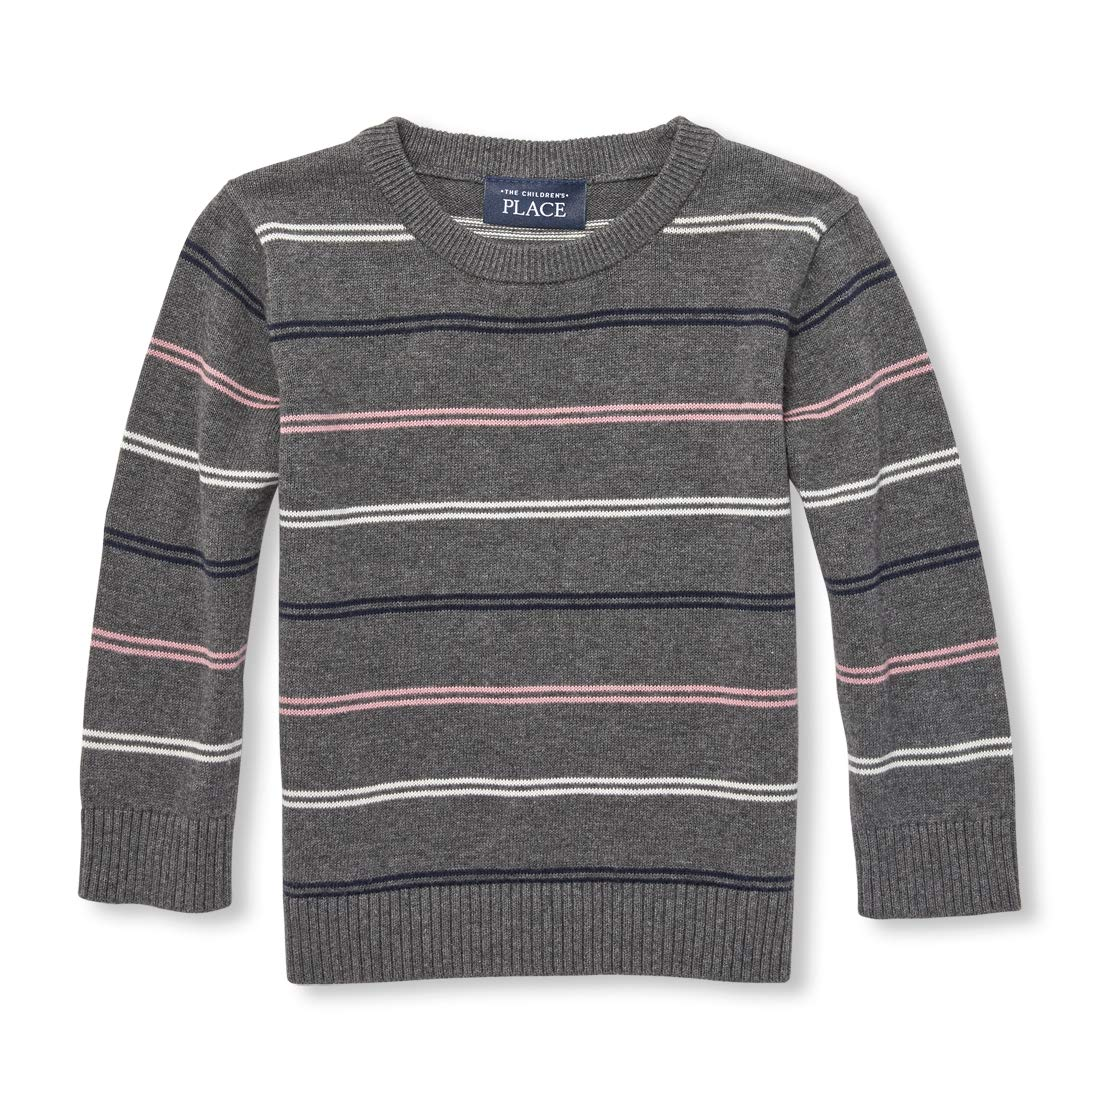 The Children's Place Baby Boys Striped Crew Neck Sweater The Children' s Place 2102851